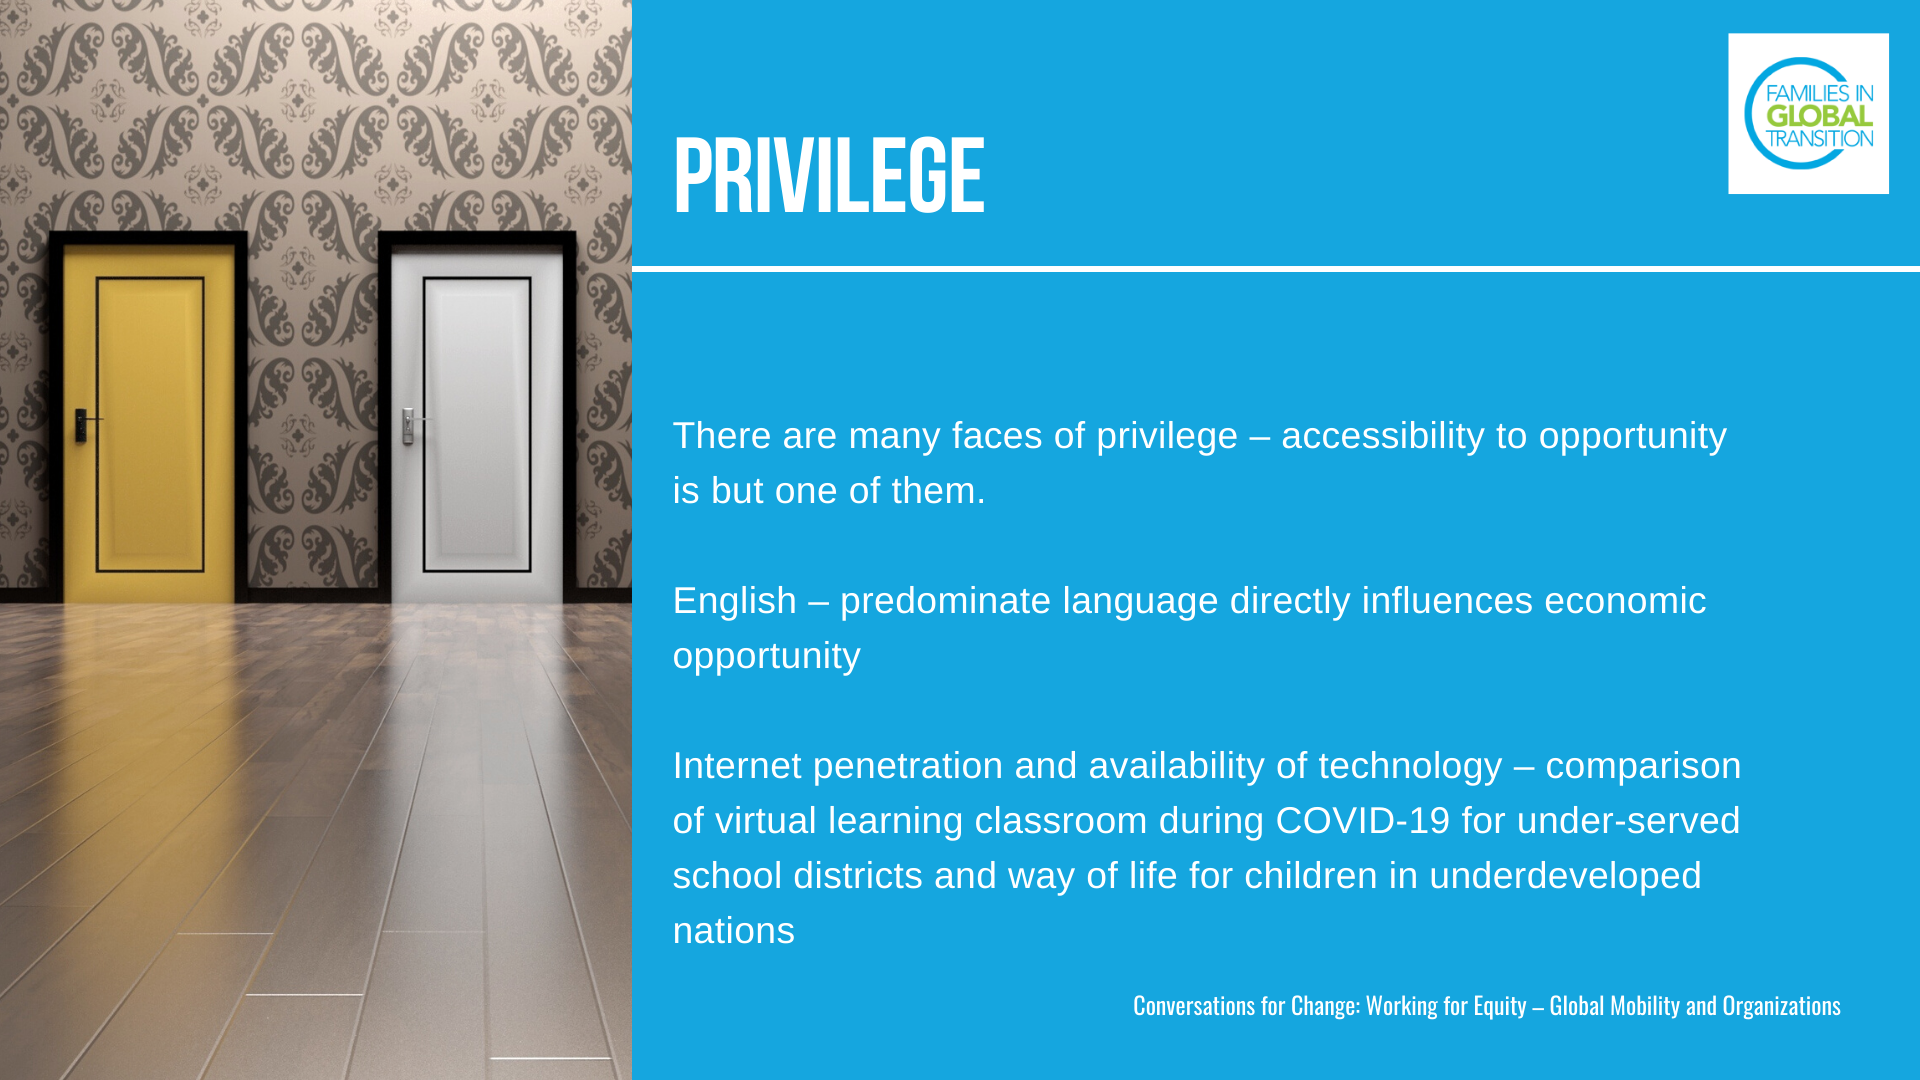 Privilege: There are many faces of privilege – accessibility to opportunity is but one of them. English – predominate language directly influences economic opportunity Internet penetration and availability of technology – comparison of virtual learning classroom during COVID-19 for under-served school districts and way of life for children in underdeveloped nations